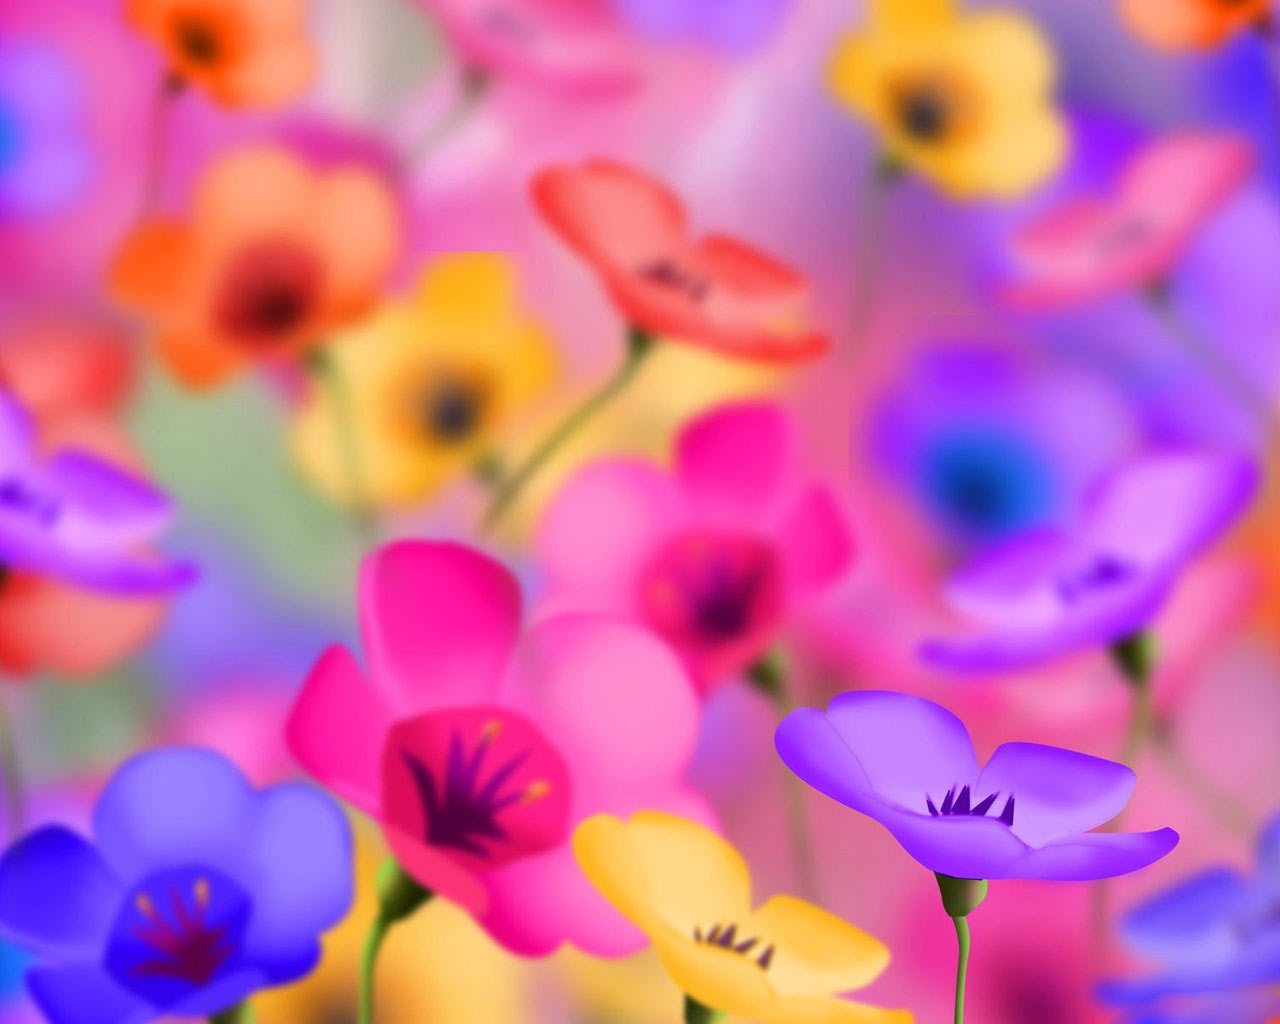 Flower Wallpapers - New Wallpaper